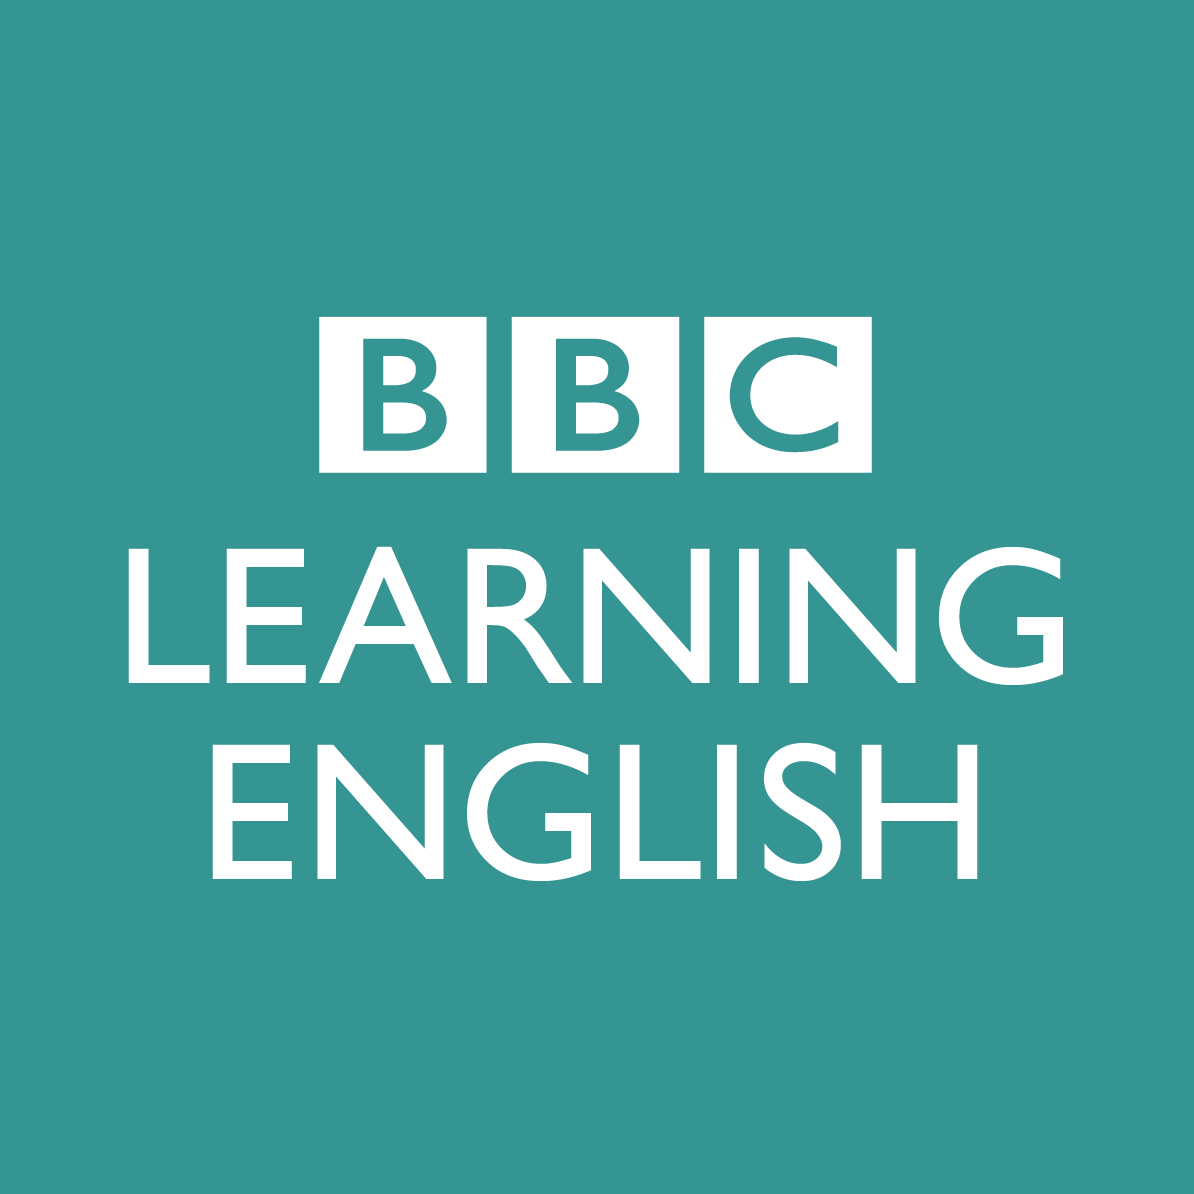 BBC Learning English (@bbclearningenglish) • Instagram ...